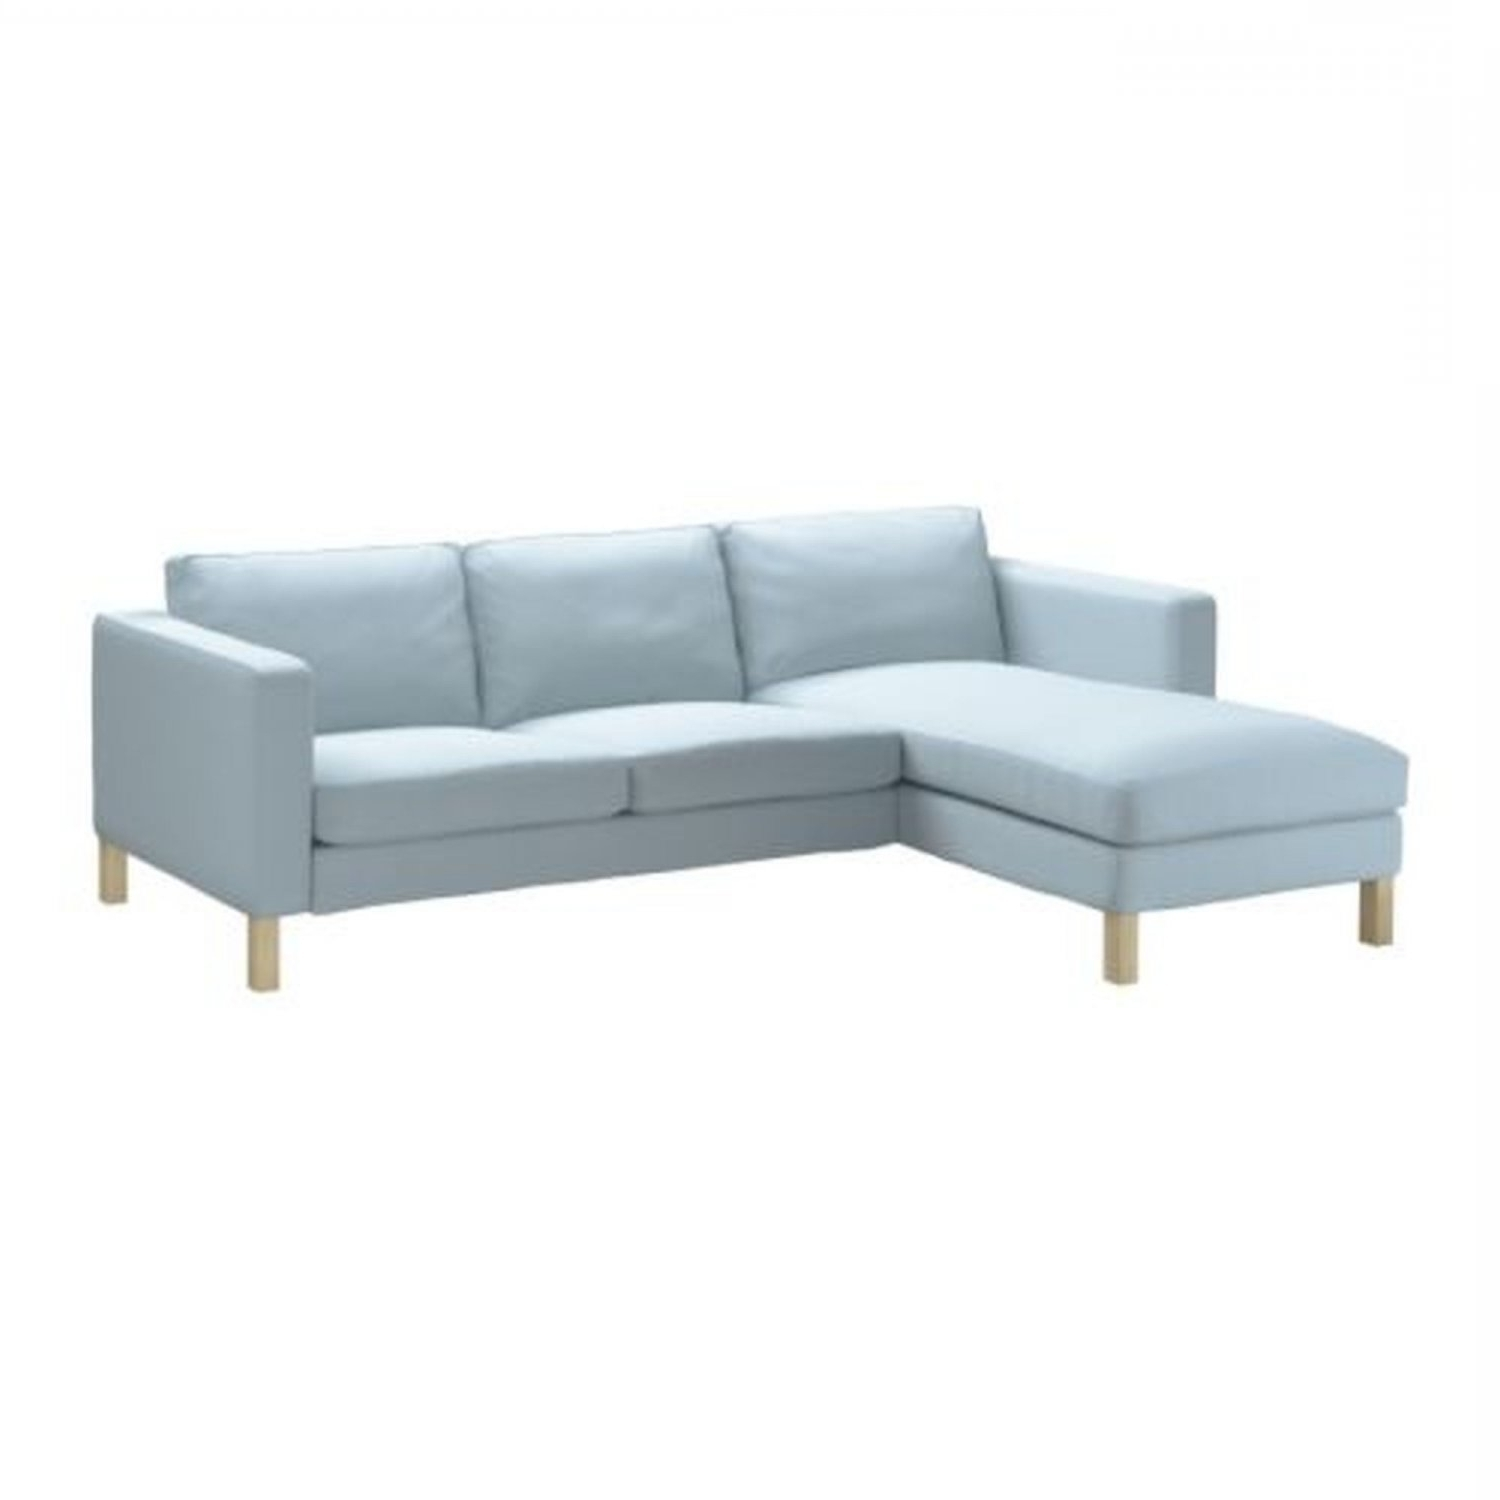 Latest Karlstad Chaise Covers Within Karlstad Chaise Cover – Mariaalcocer (View 12 of 15)